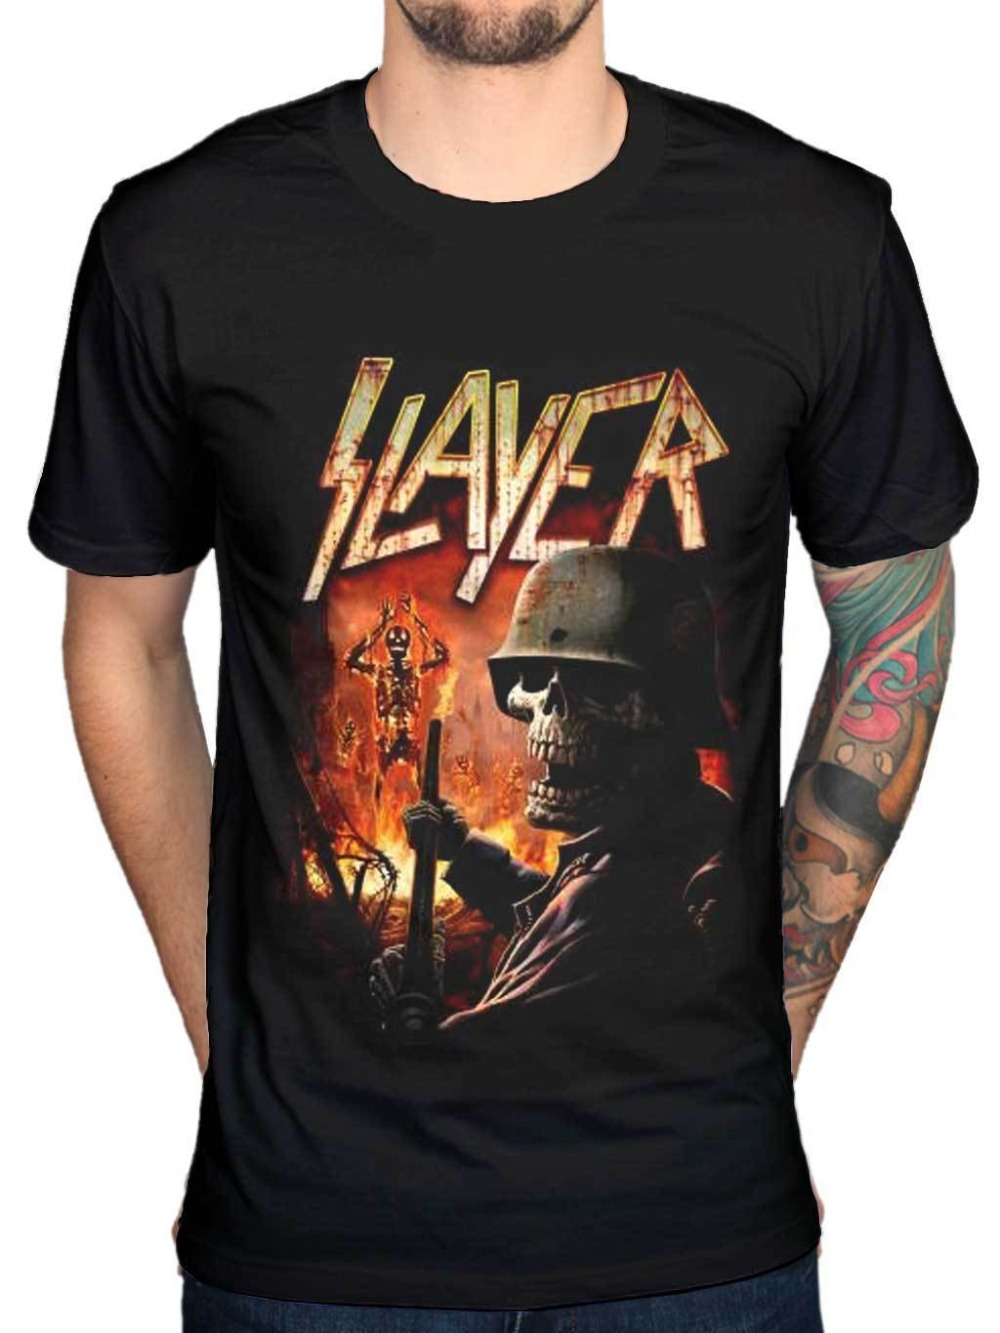 T Shirt Design Shop Short Sleeve Fashion 2018 Crew Neck Official Slayer Zombie Torch Tee Shirts For Men